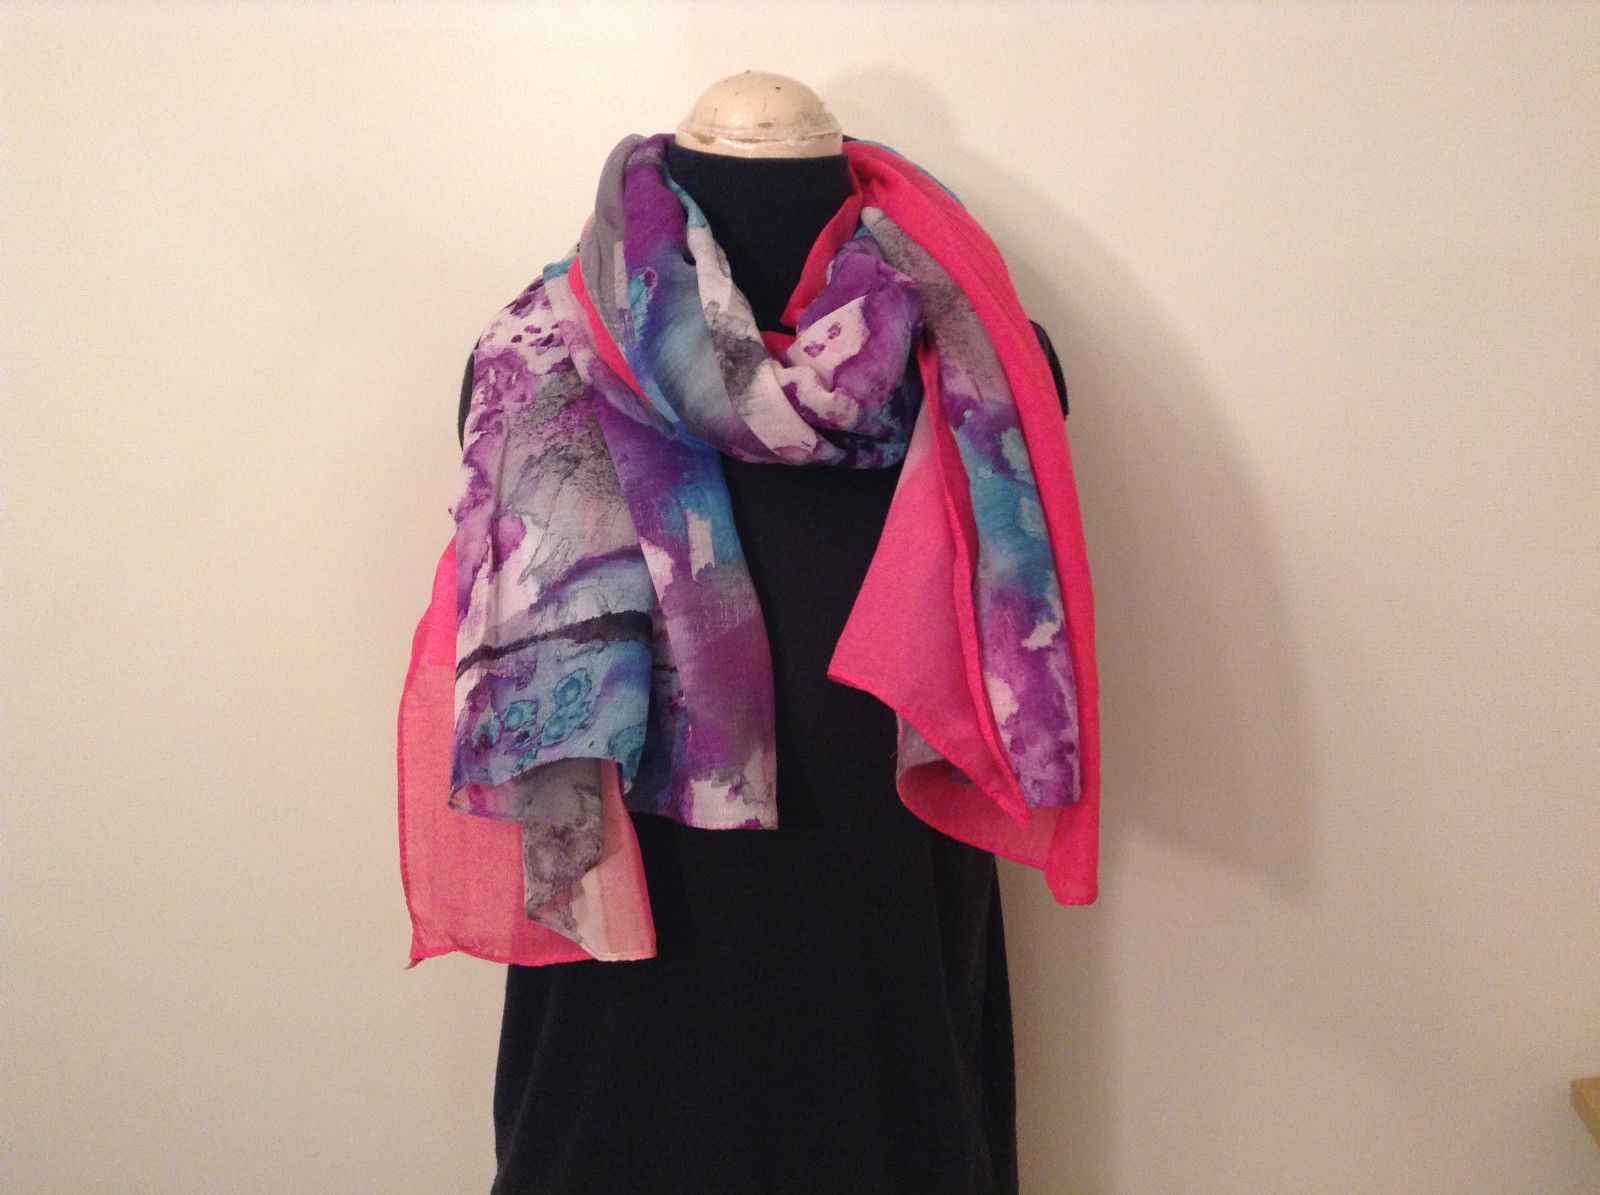 NEW Blue and Pink Shibori Tie Dye Scarf by MAD 100 Percent Polyester